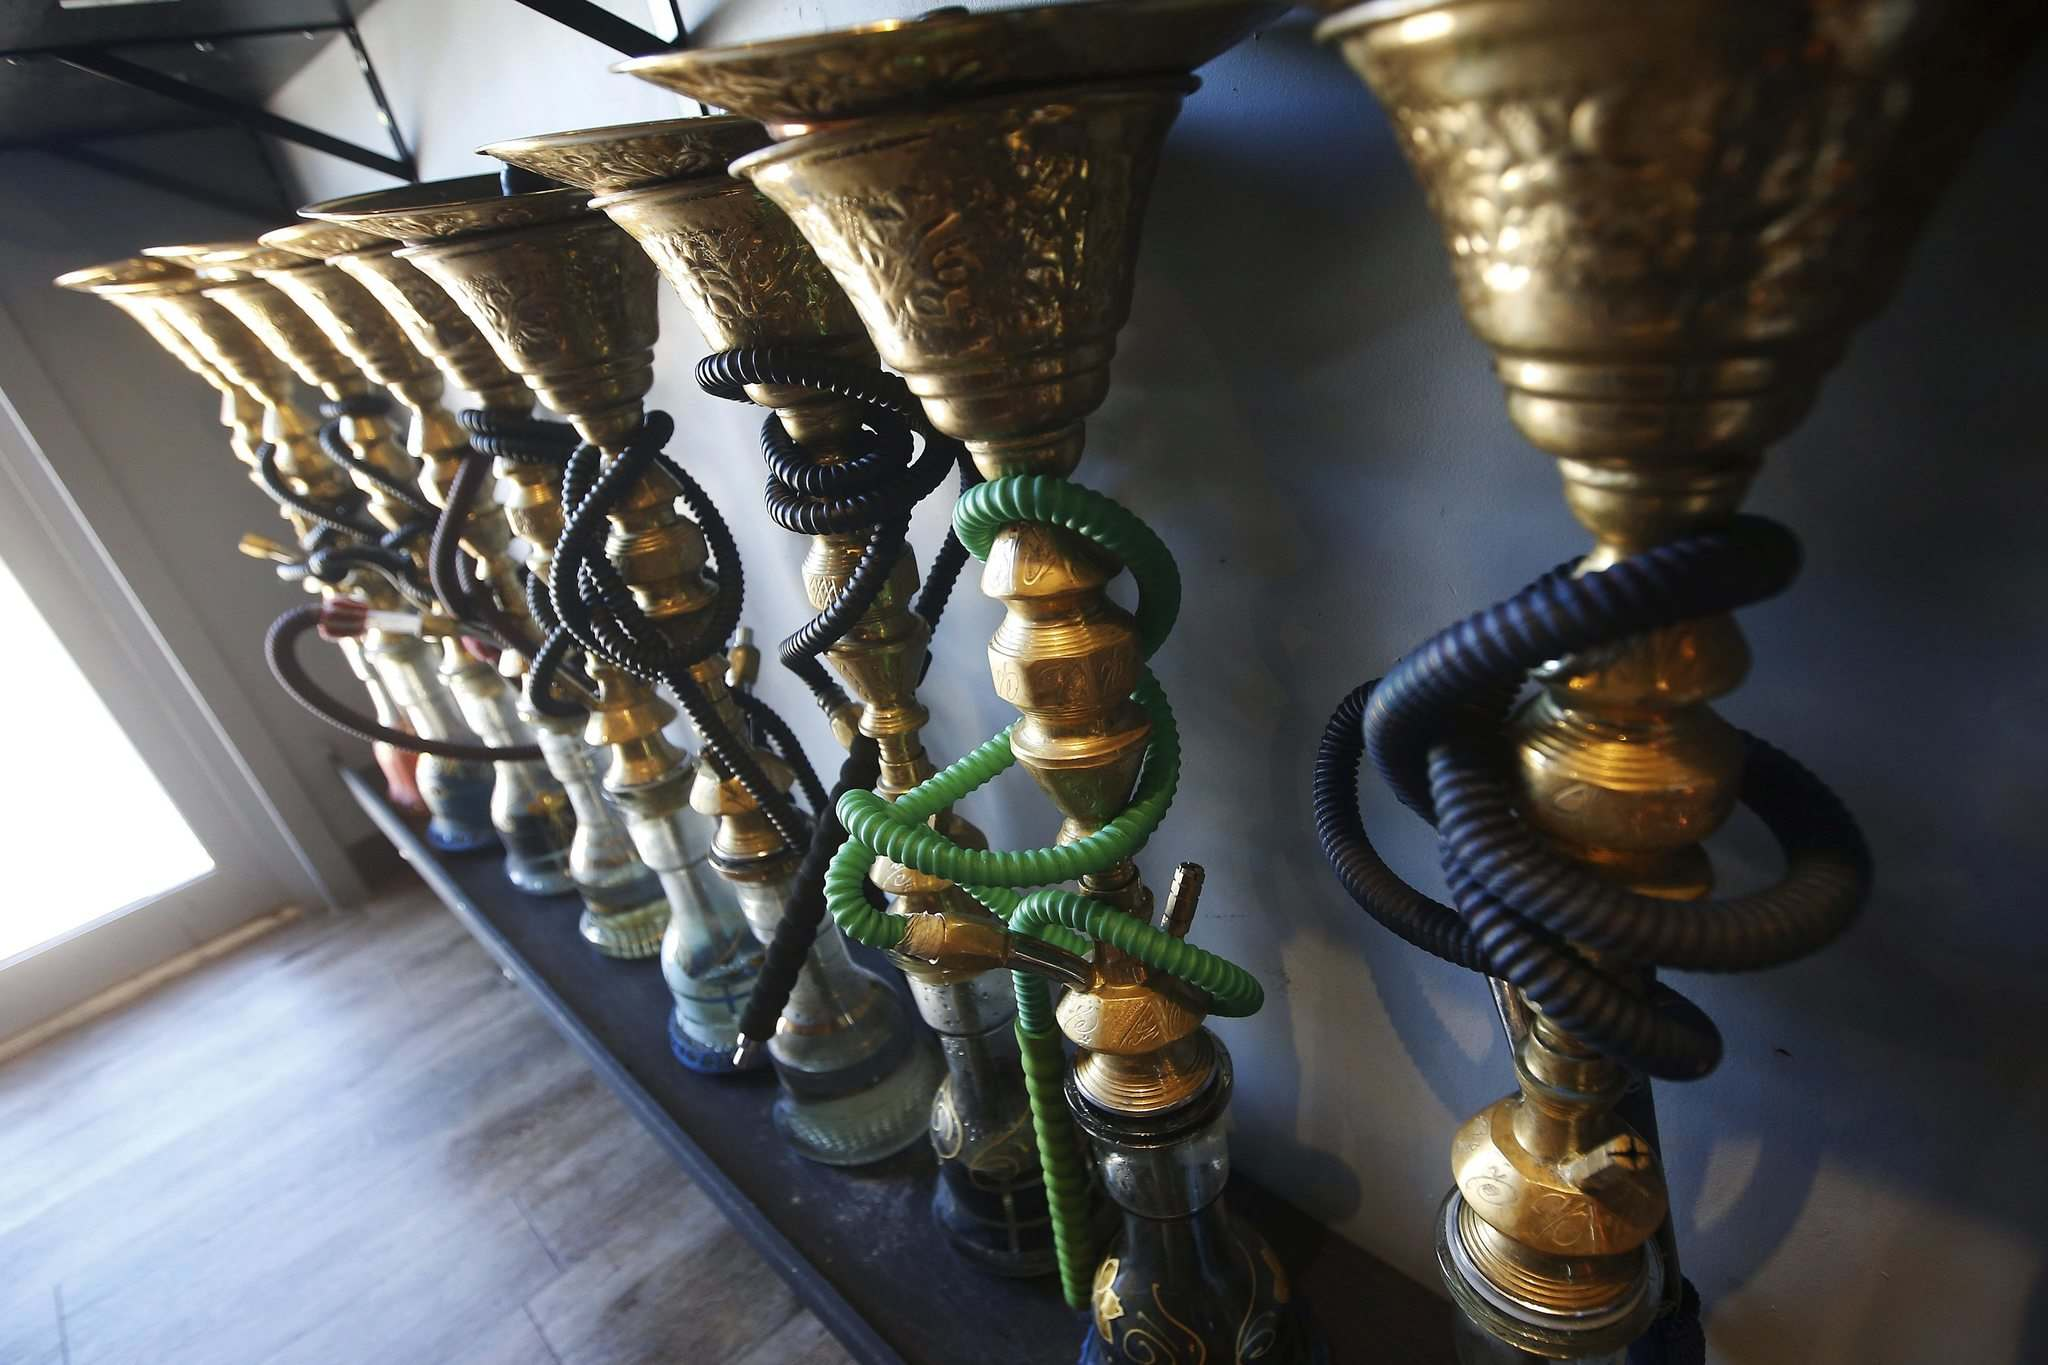 Hookah smoke exposes its users to high levels of dangerous chemicals. (John Woods / Winnipeg Free Press files)